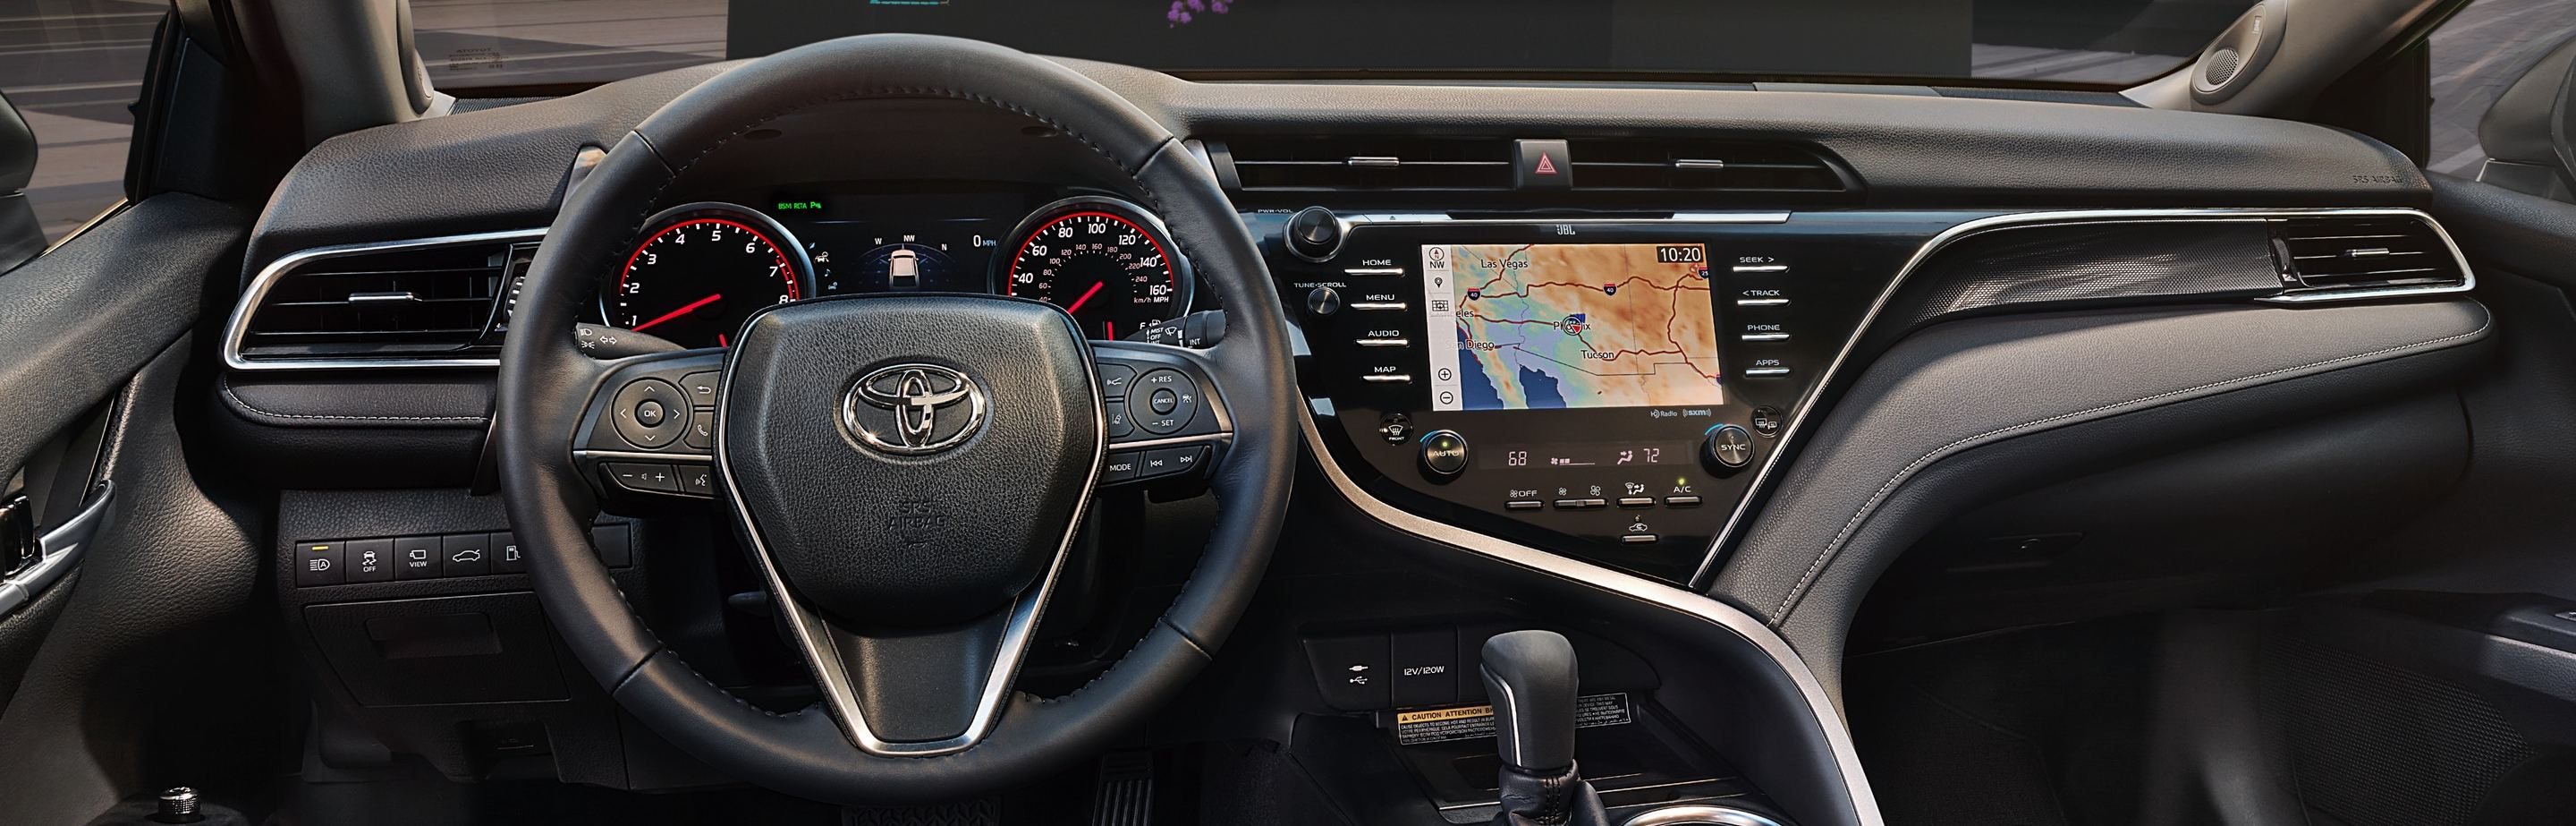 Driver's View of the 2019 Toyota Camry